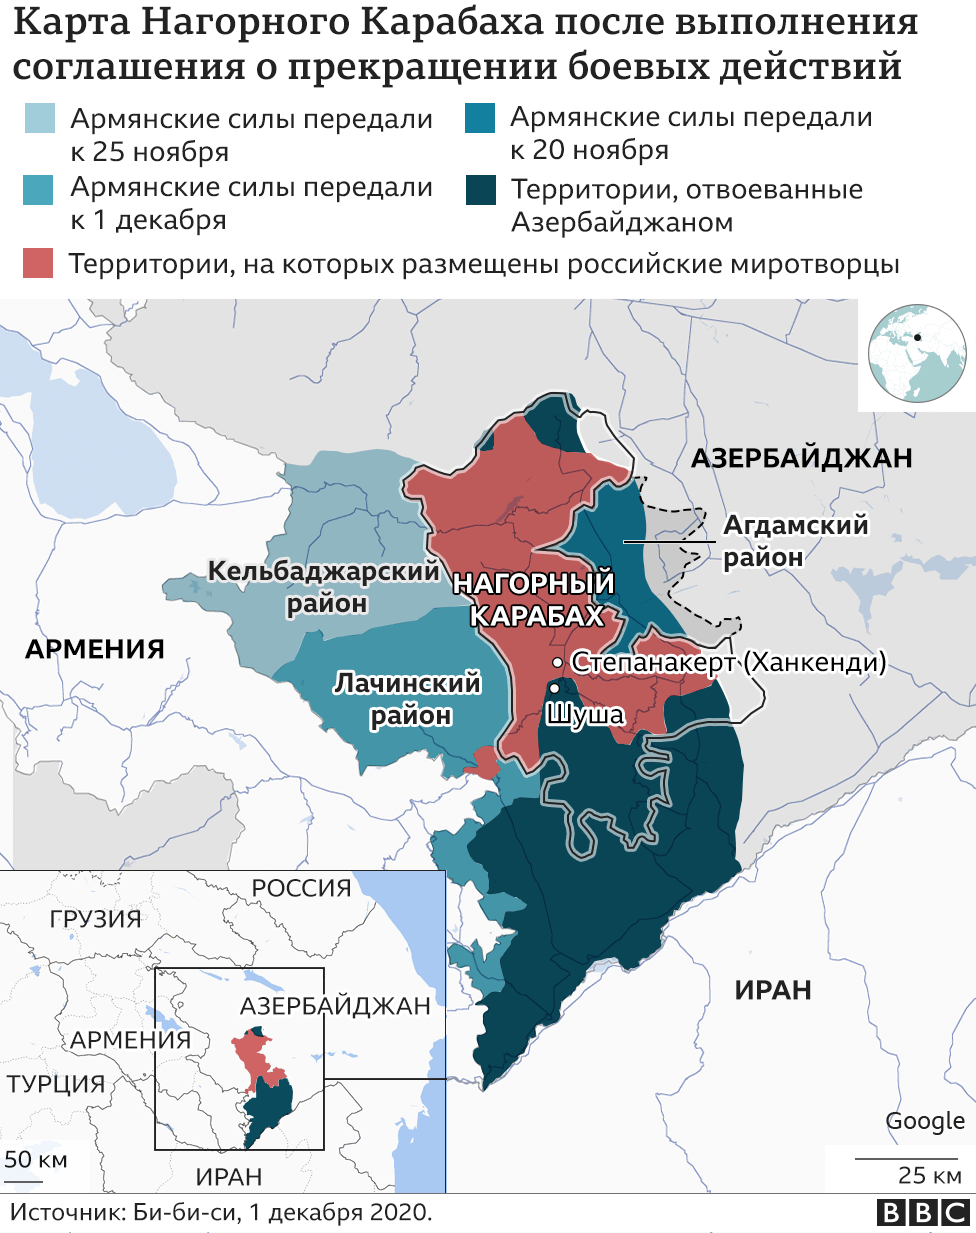 116131392 nk peace deal detailed map russian v2 1.12.20 640 draft nc nc карабахская война карабахская война